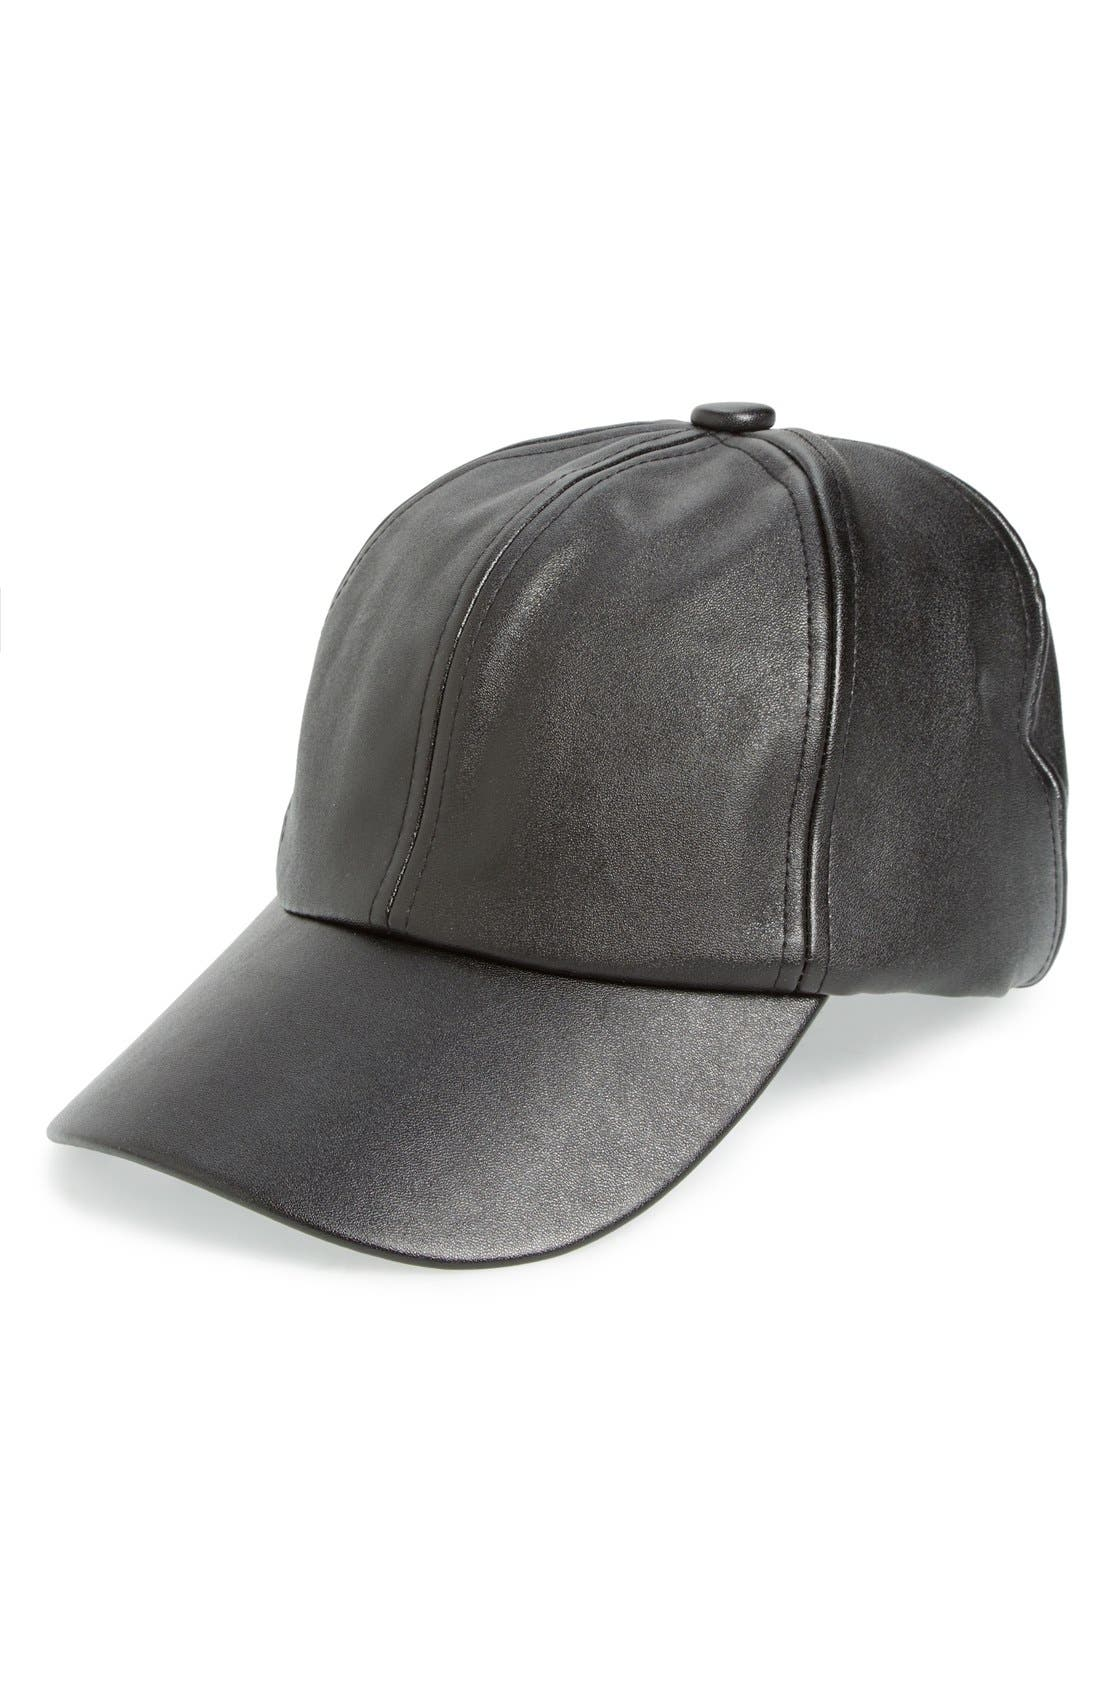 Alternate Image 1 Selected - Amici Accessories Faux Leather Ball Cap